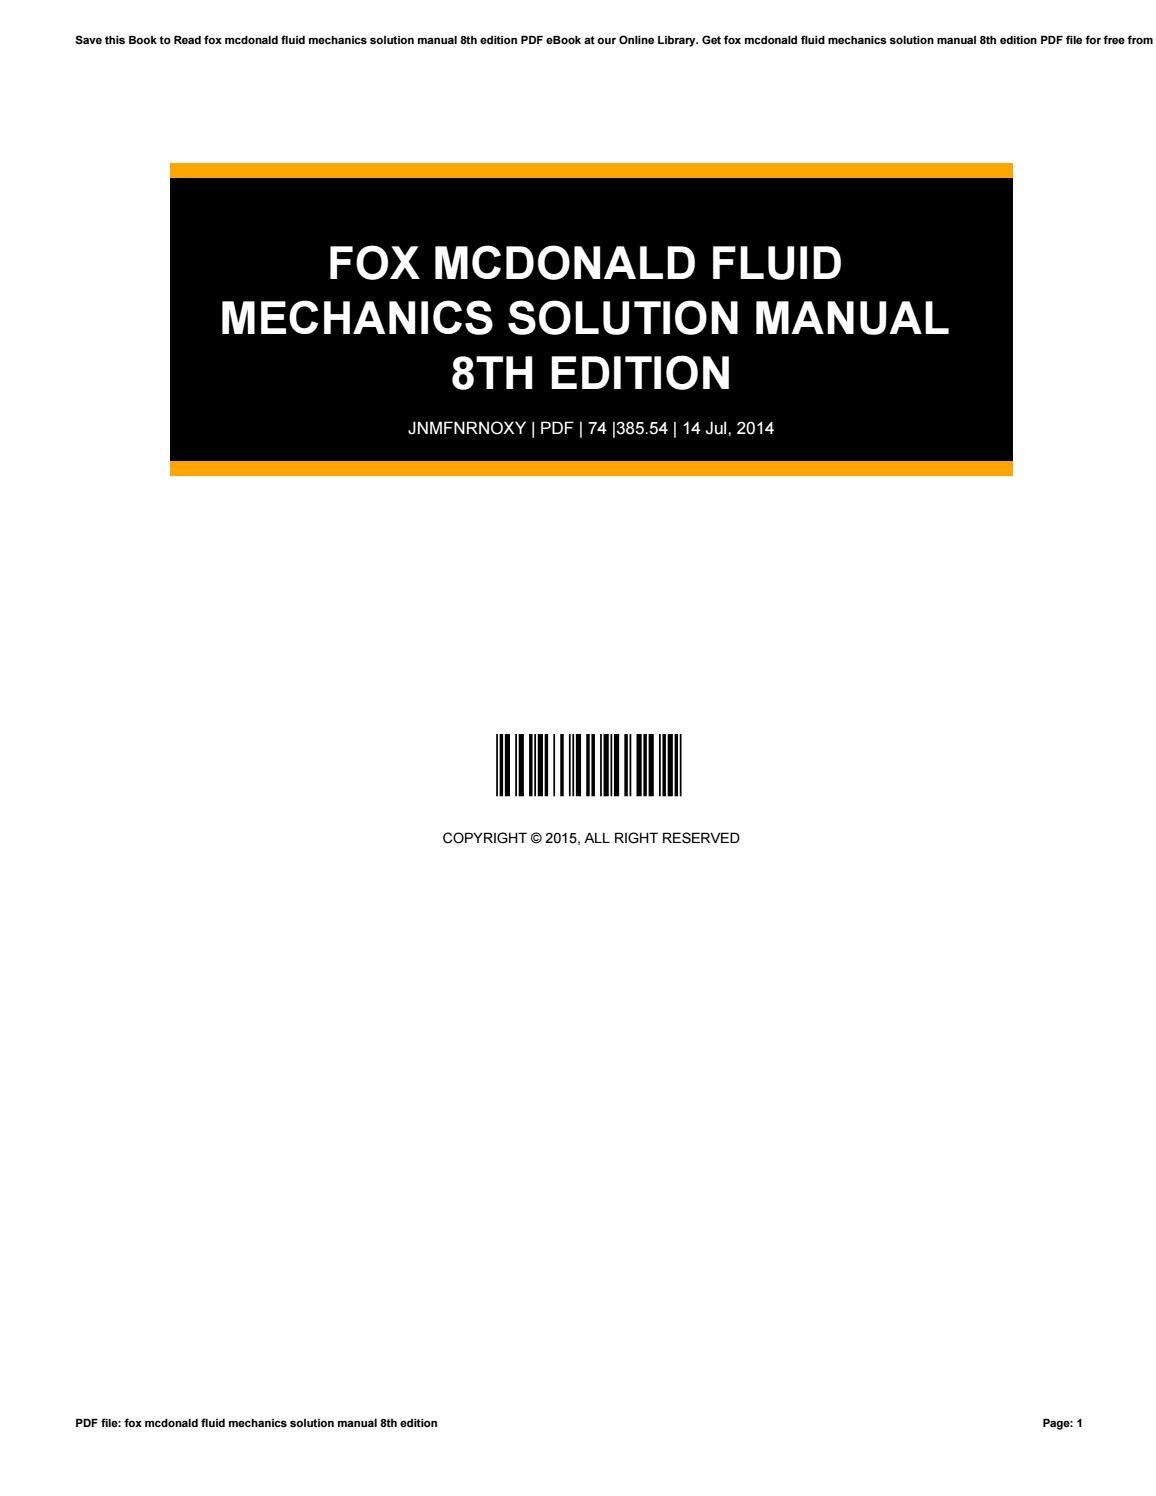 Fox mcdonald fluid mechanics solution manual 8th edition by e-mailbox85 -  issuu